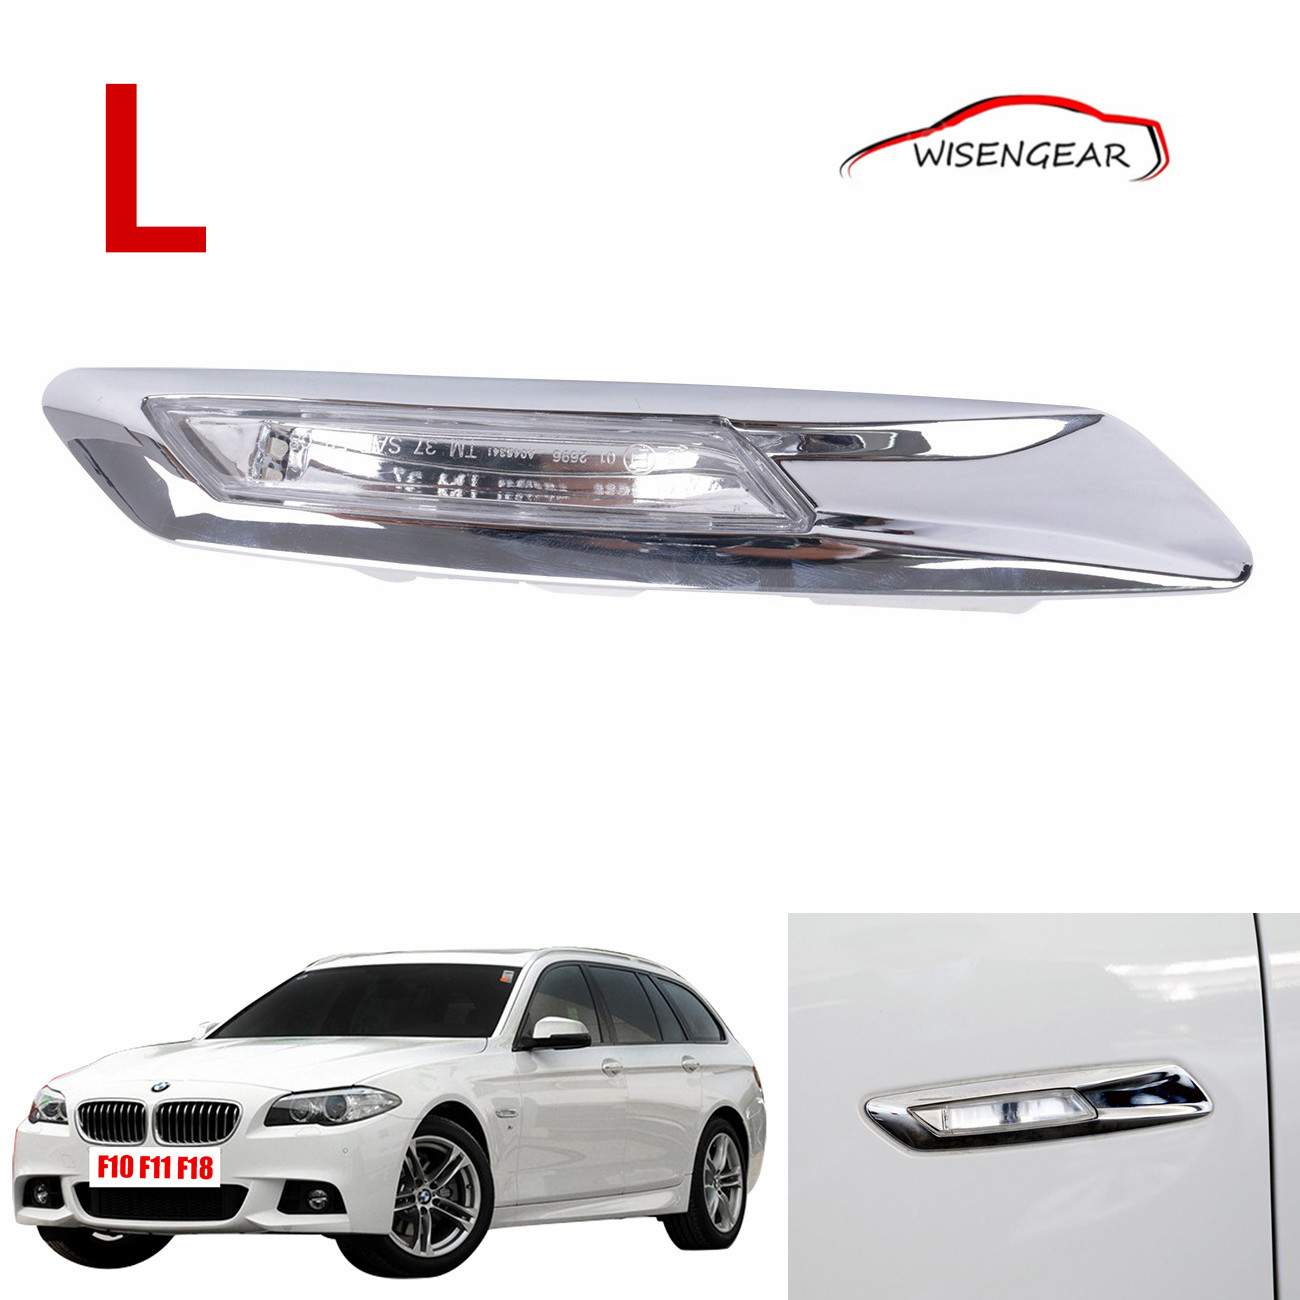 Left Chrome LED Side Turn Signal Light For BMW F10 F11 F18 5 series 550i 535i 528i M5 2011 - 2015 Replay 3137154167 C/5<br><br>Aliexpress